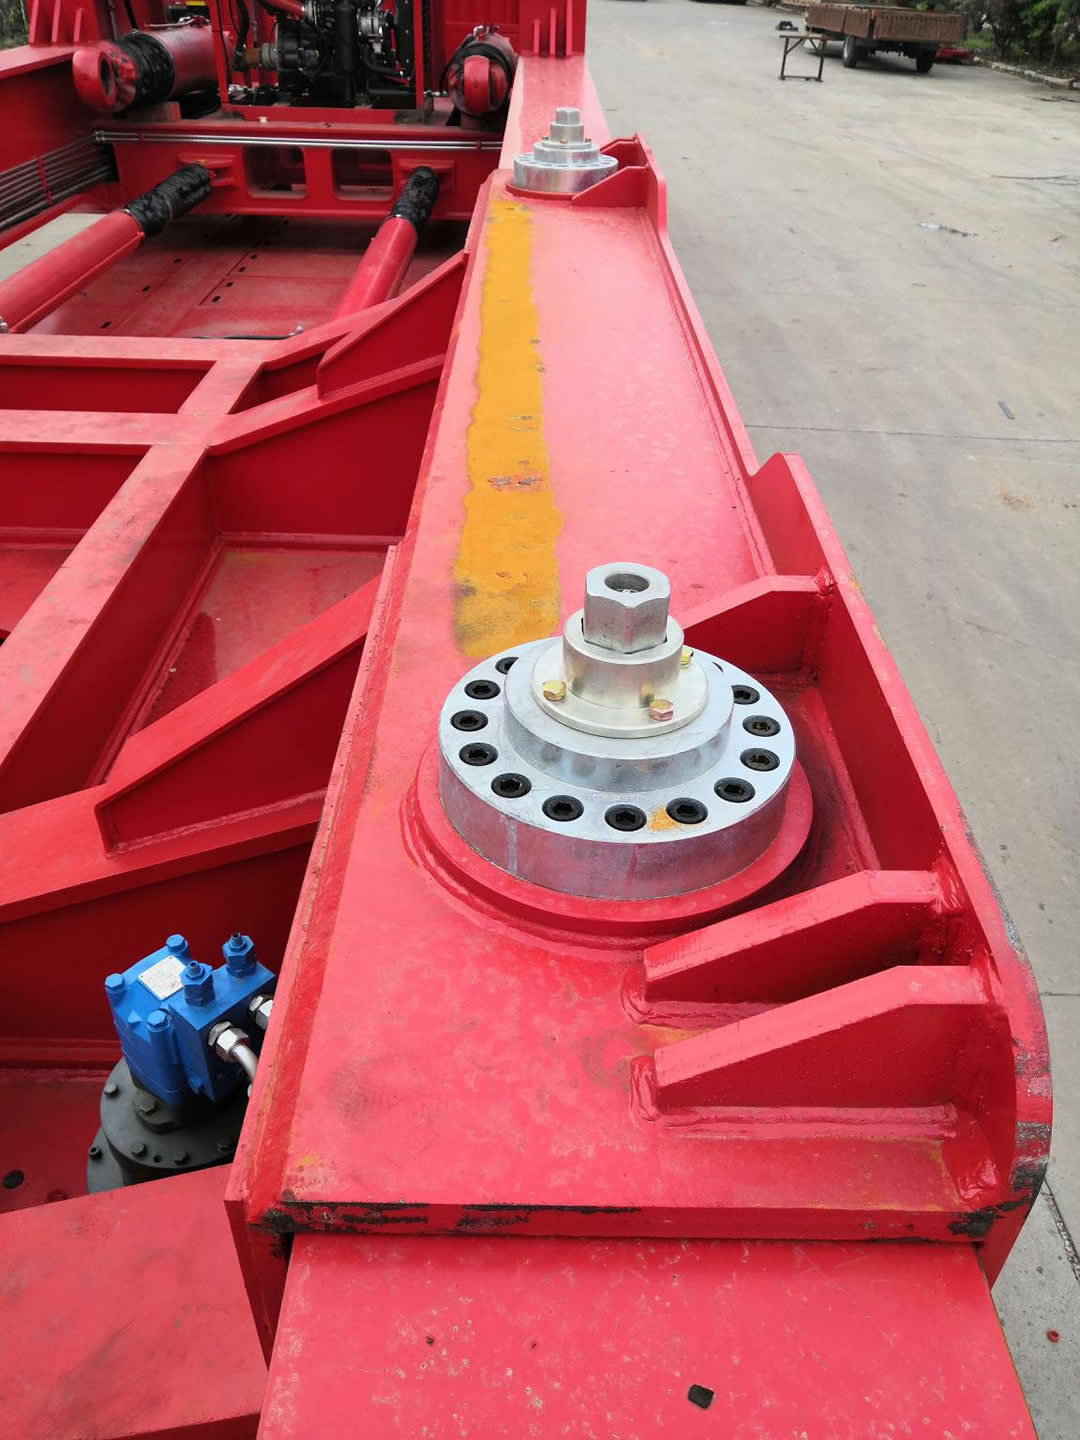 Four points weighing system, effectively guarantee COG safety